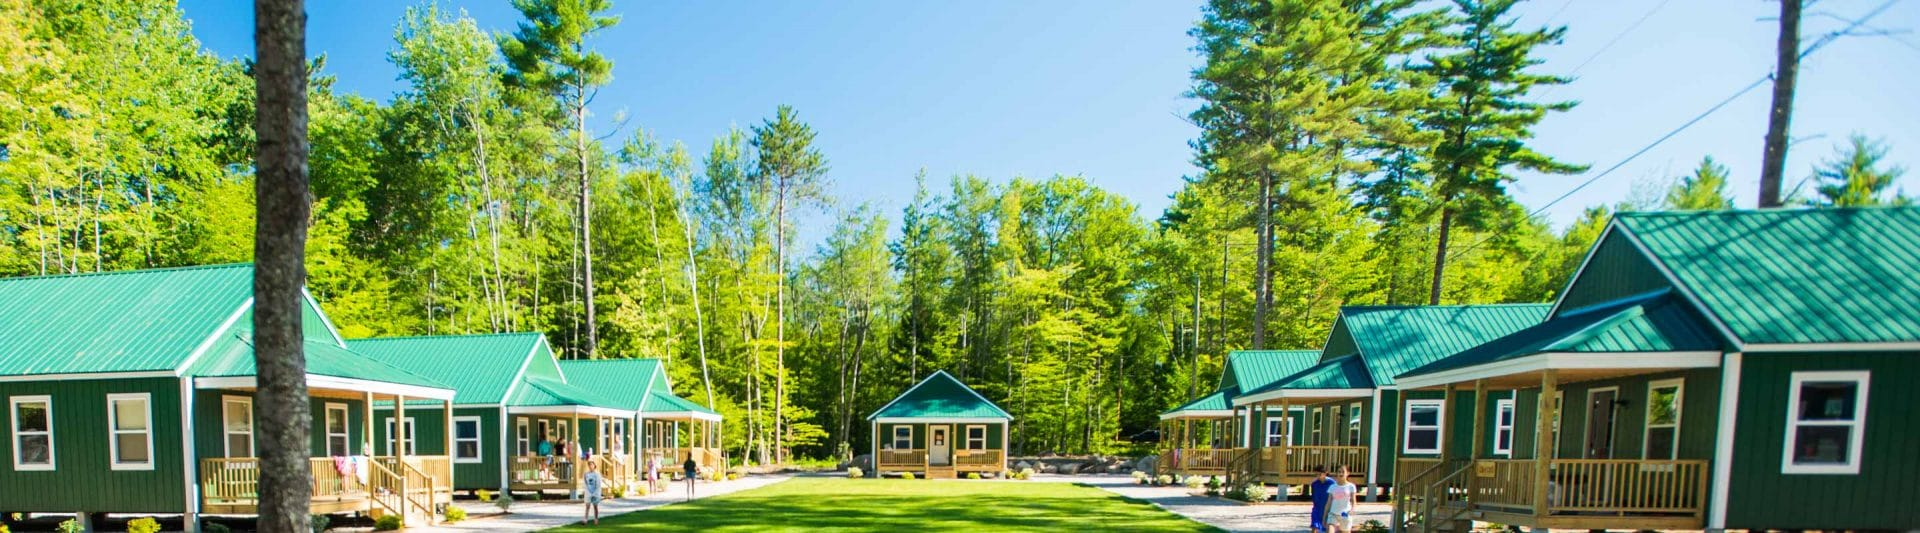 modern cabins in wooded area